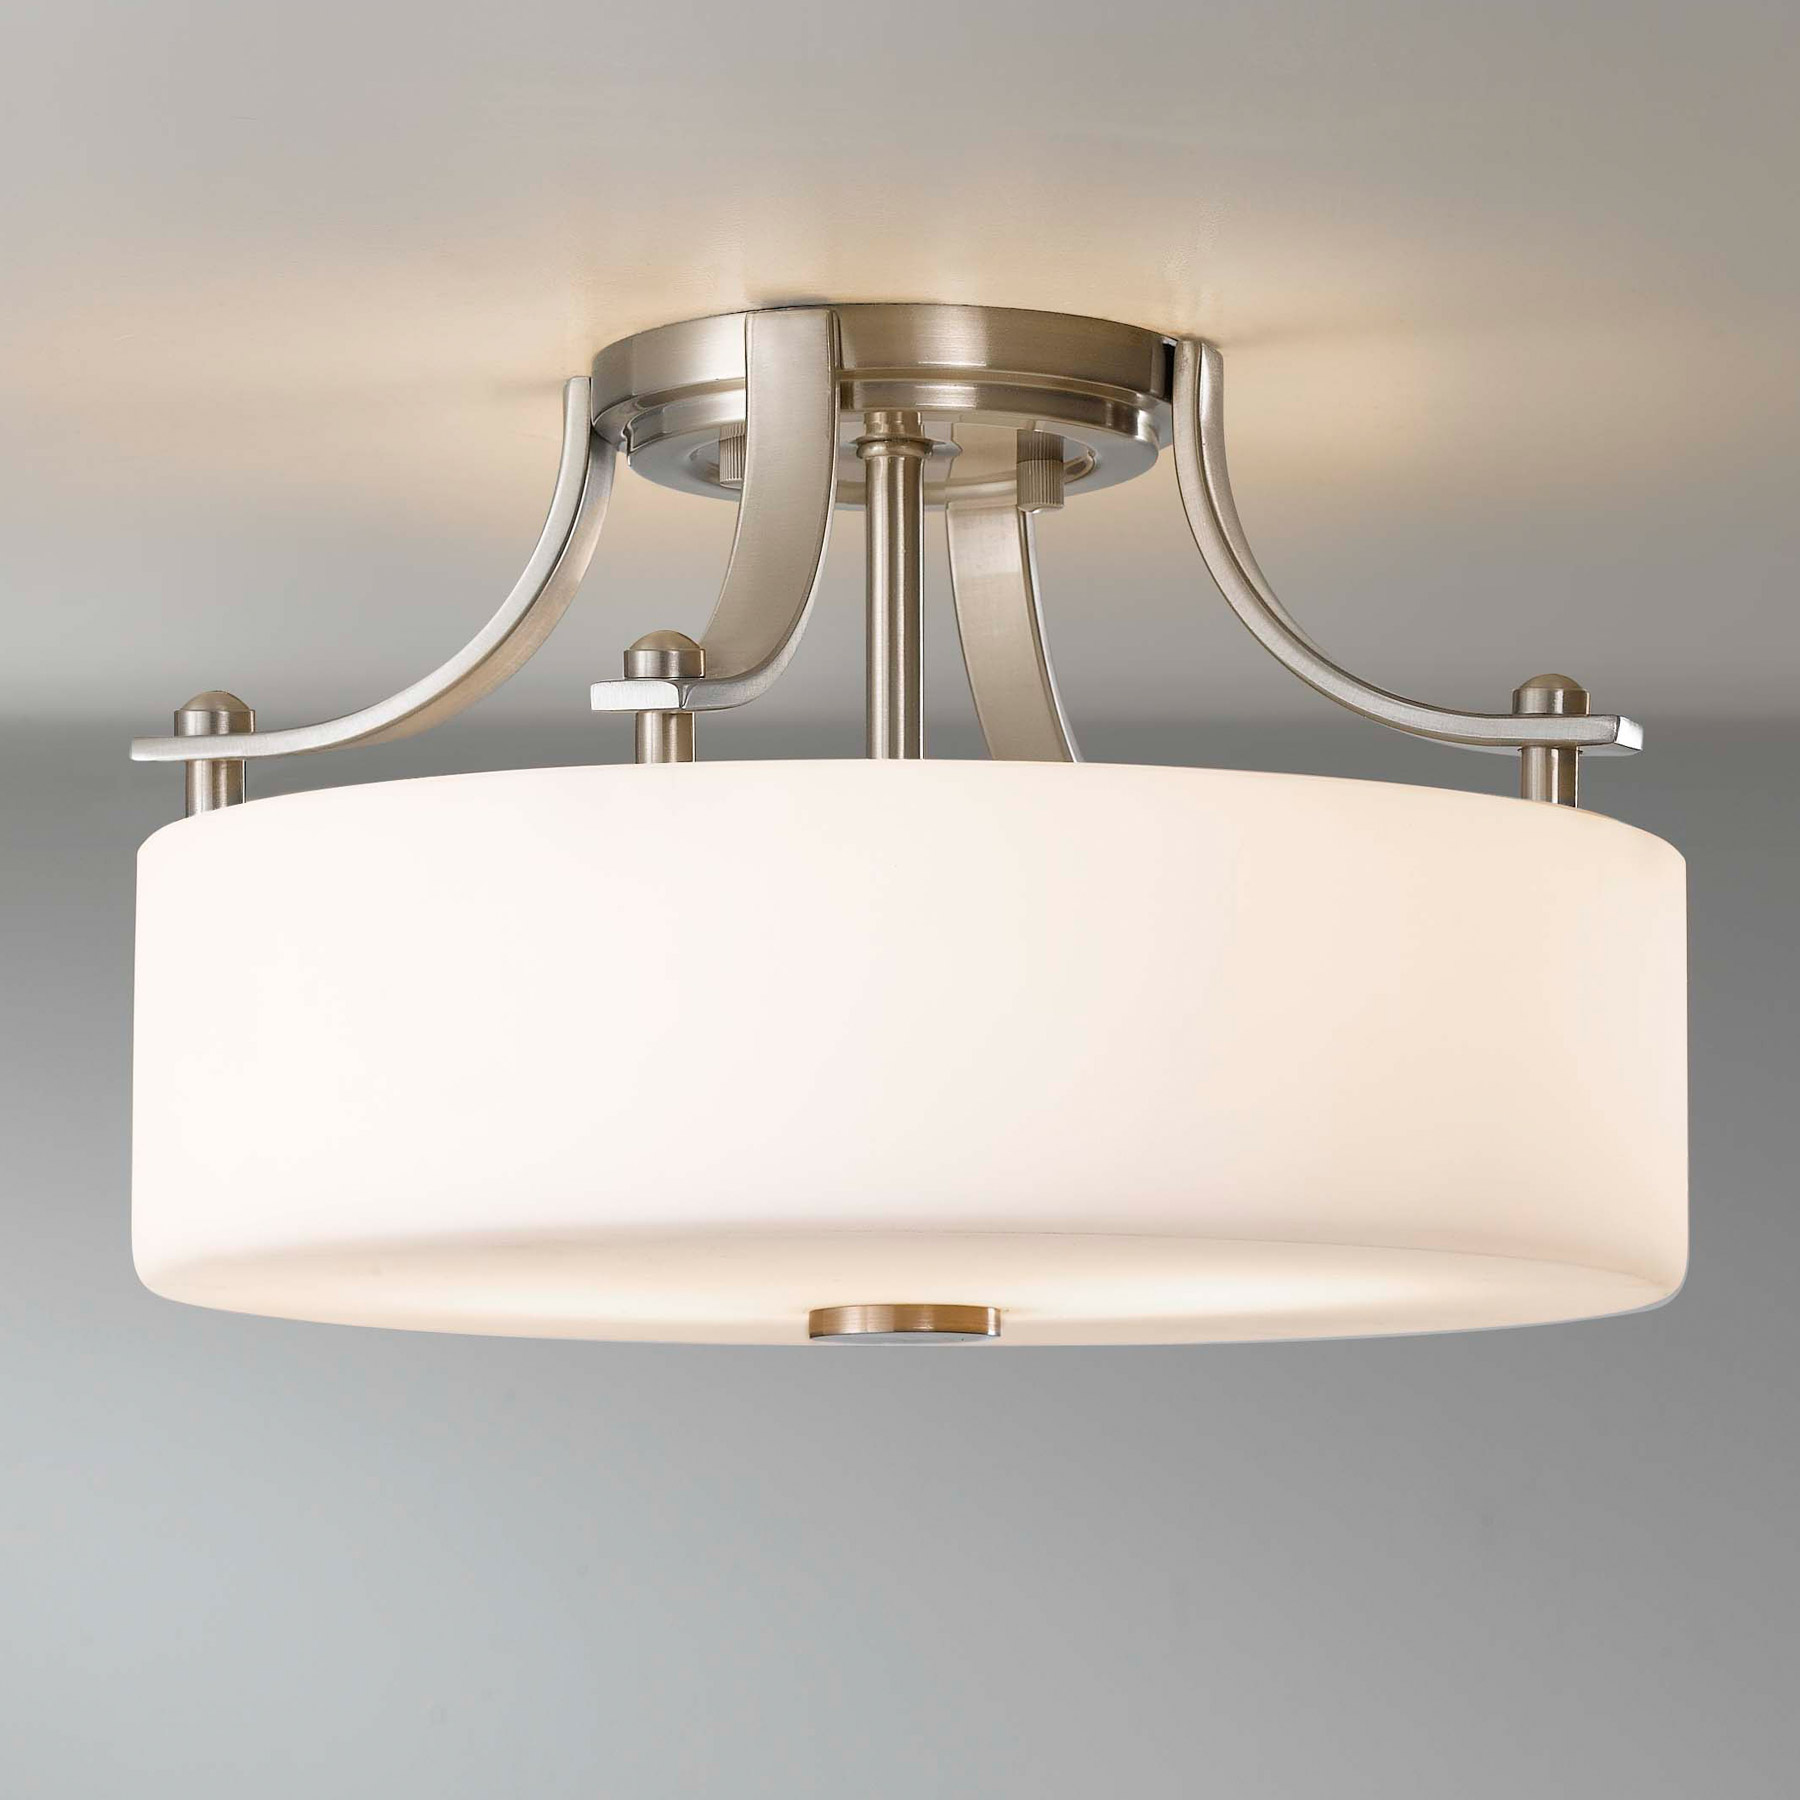 Close To Ceiling Modern Lights : Murray feiss sf bs sunset drive semi flush ceiling fixture